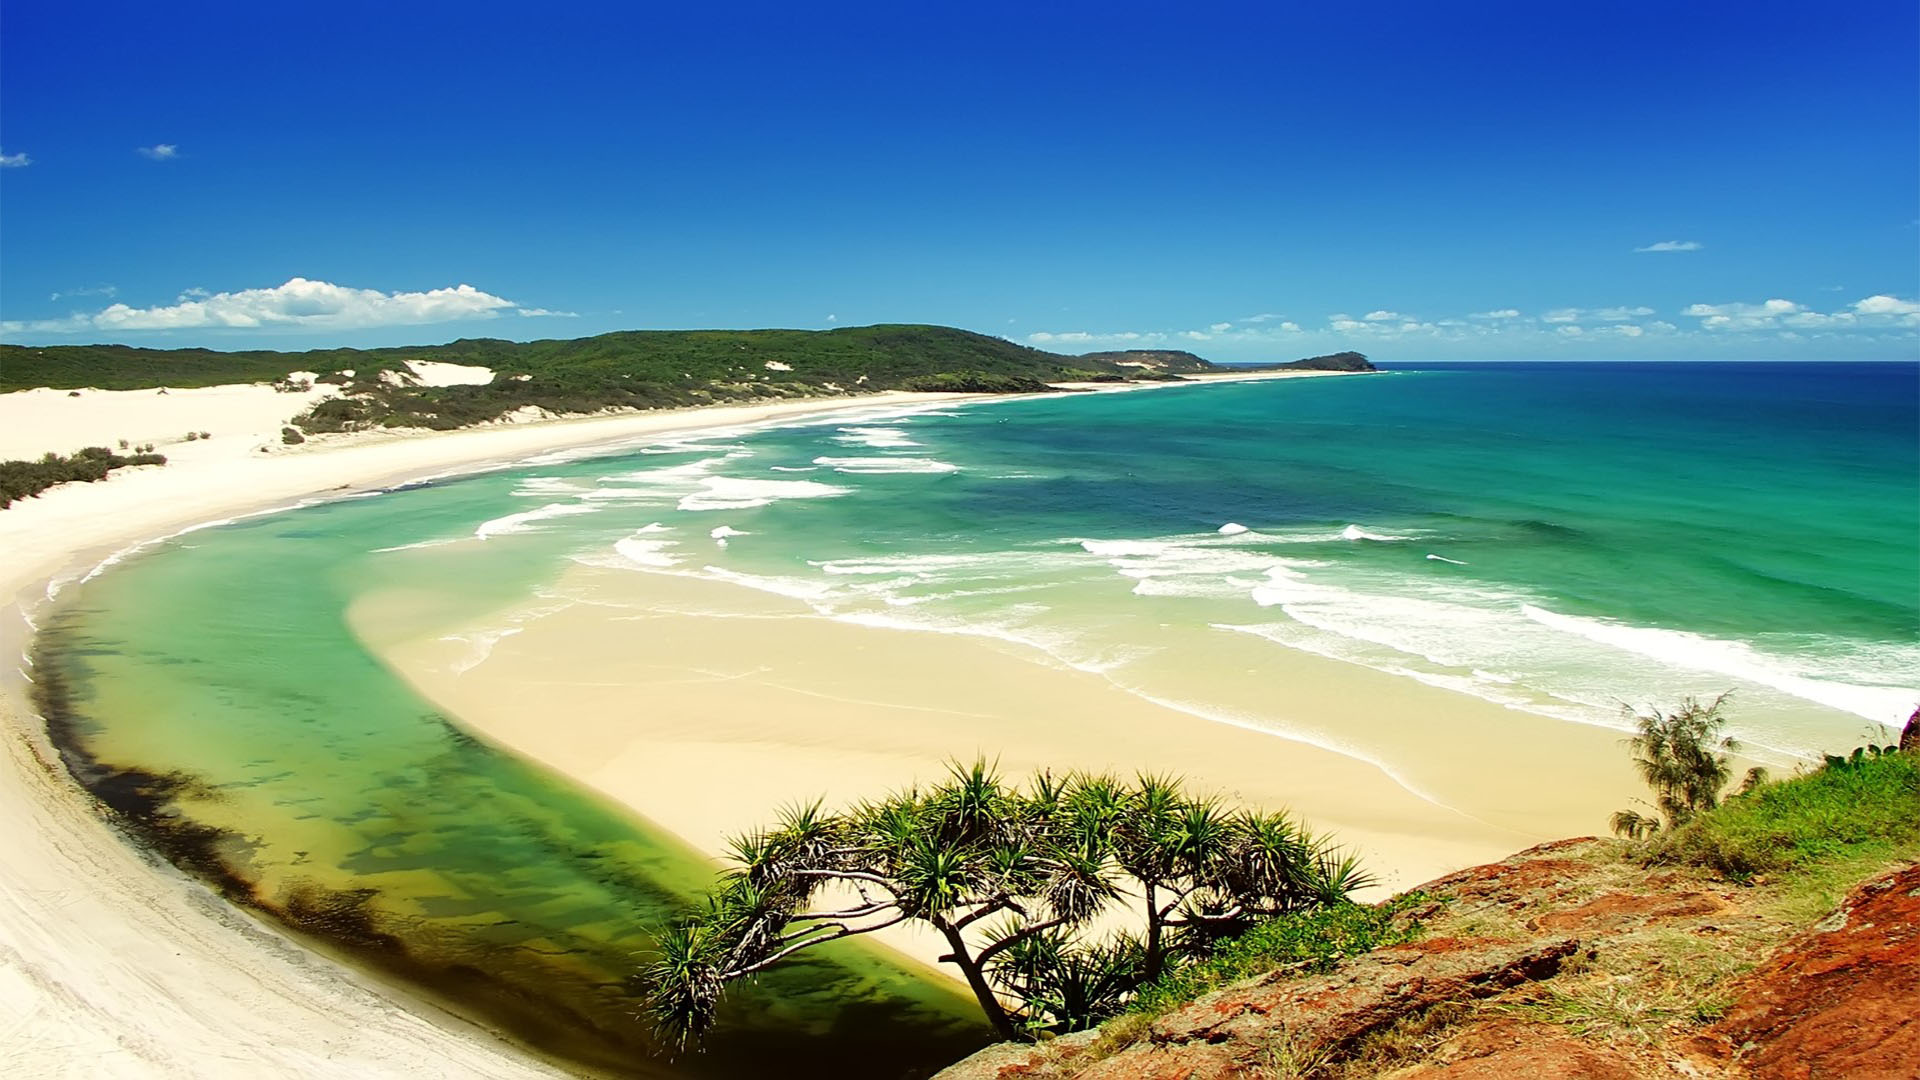 Nature Hd Wallpapers For Desktop 4k 3d Nature Beautiful Fraser Island 1920x1080 Wallpaper Teahub Io